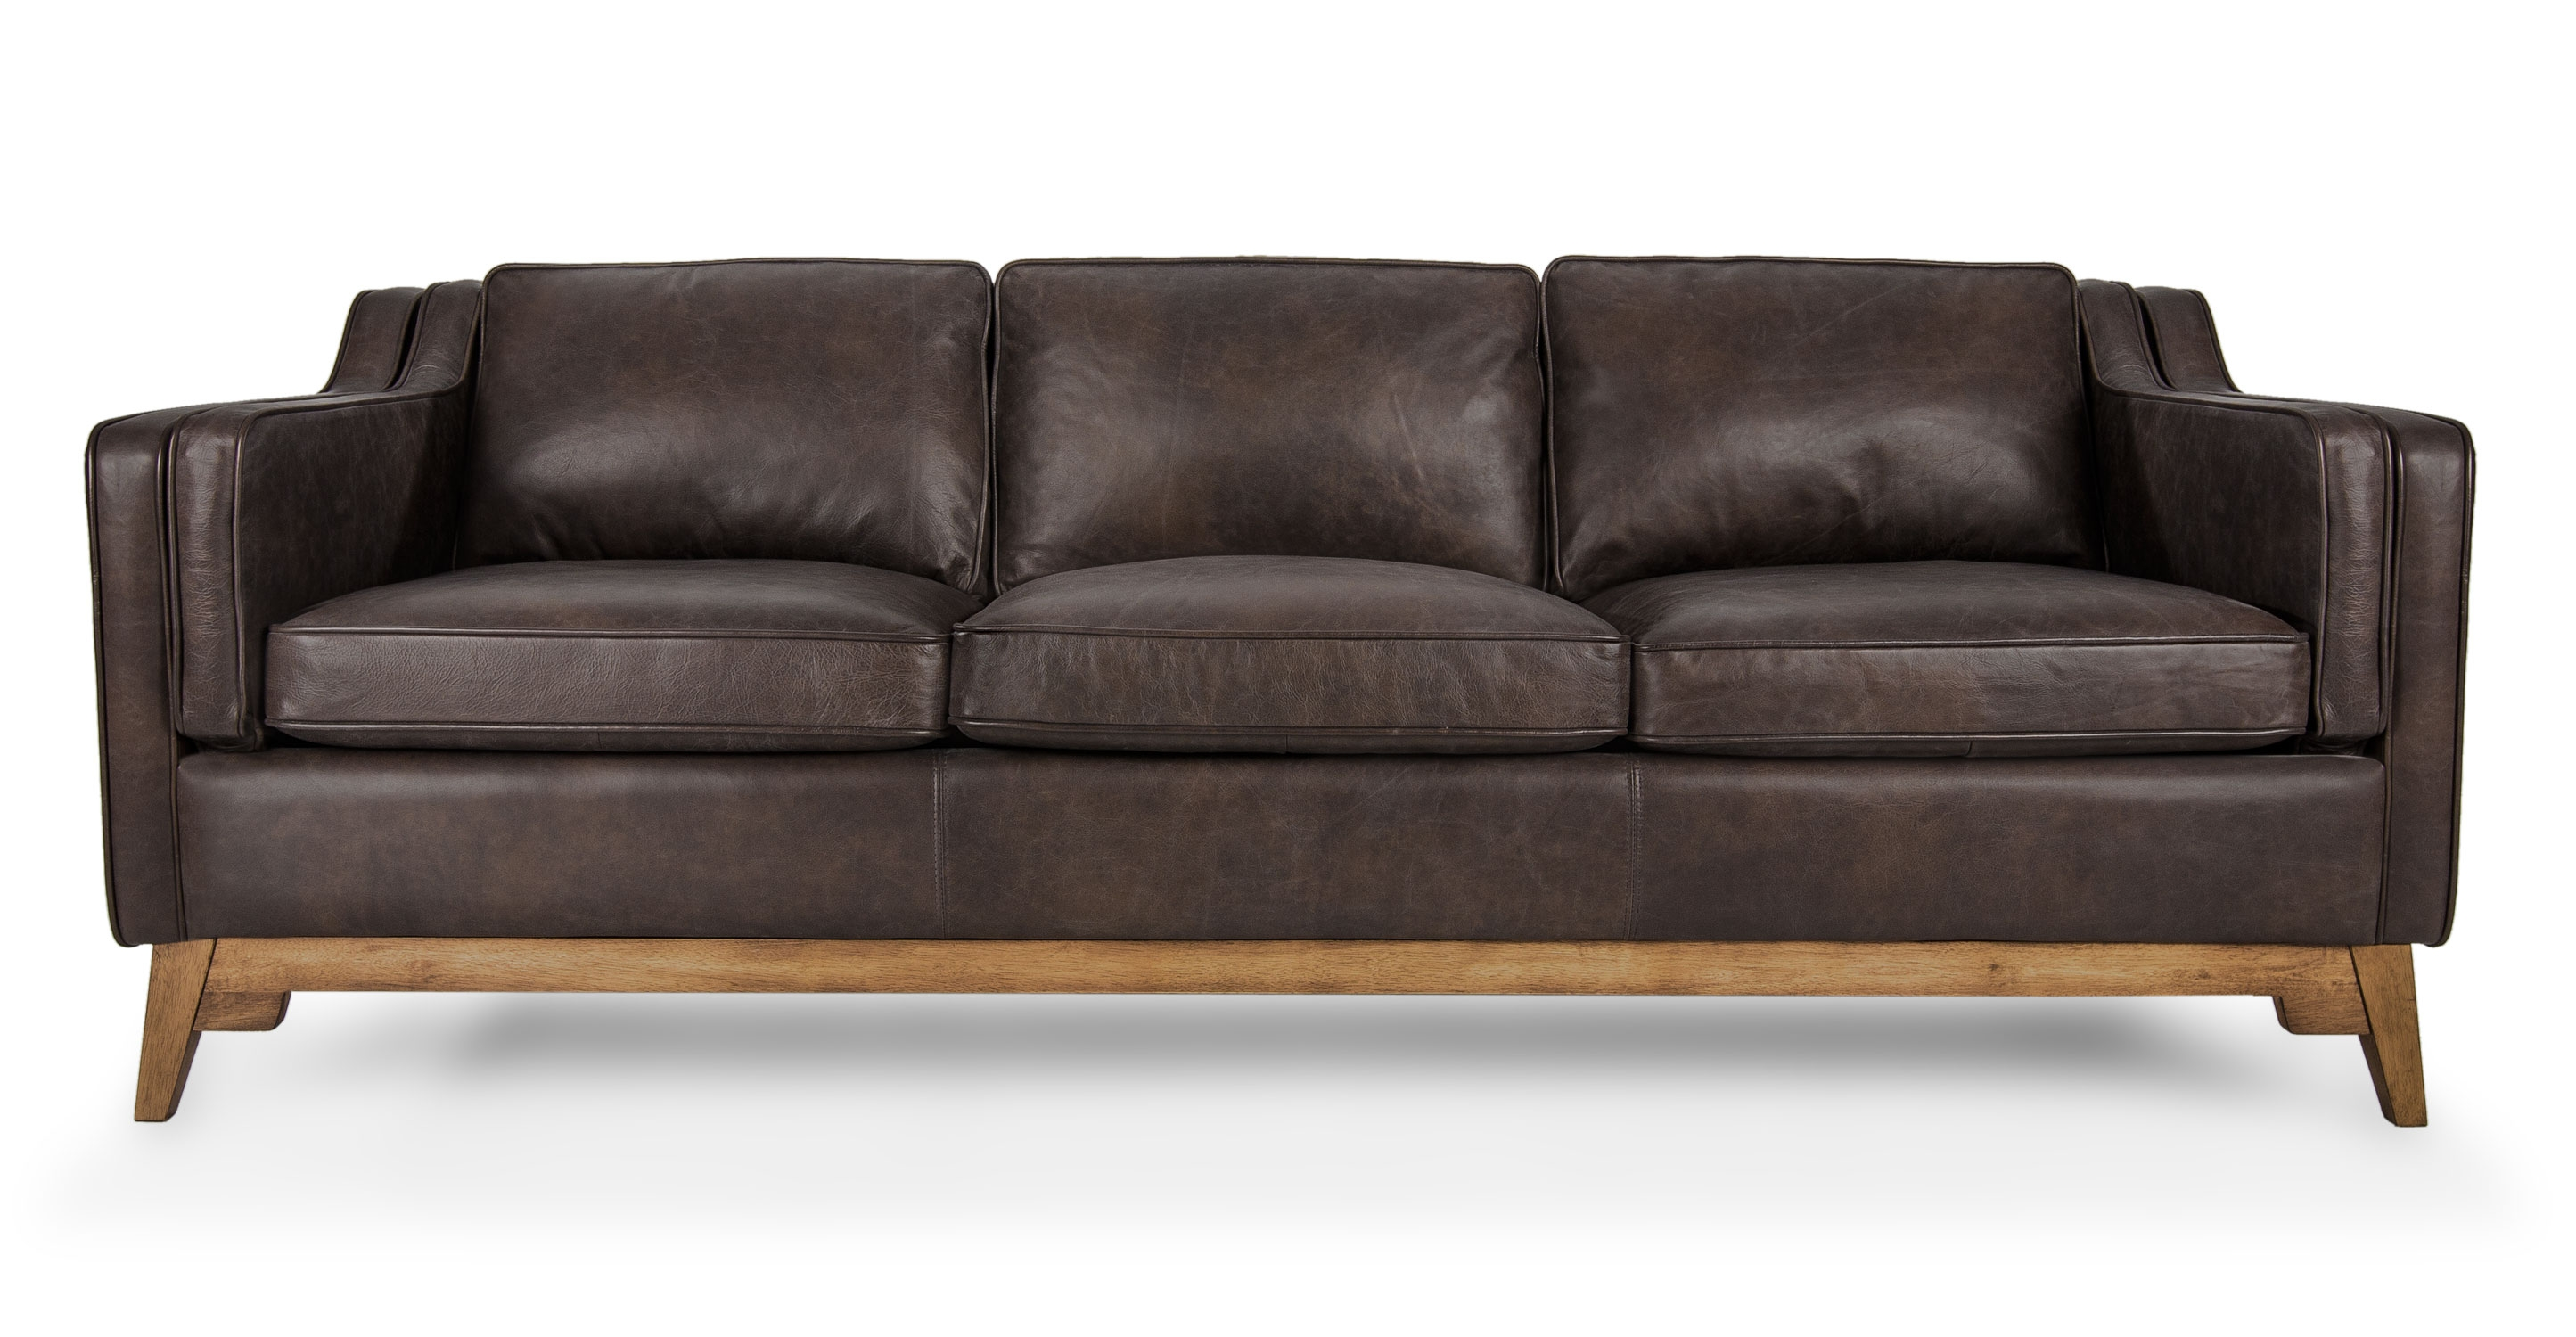 Leather Sofa In Oxford Brown Article Worthington Modern Inside Oxford Sofas (Image 3 of 15)